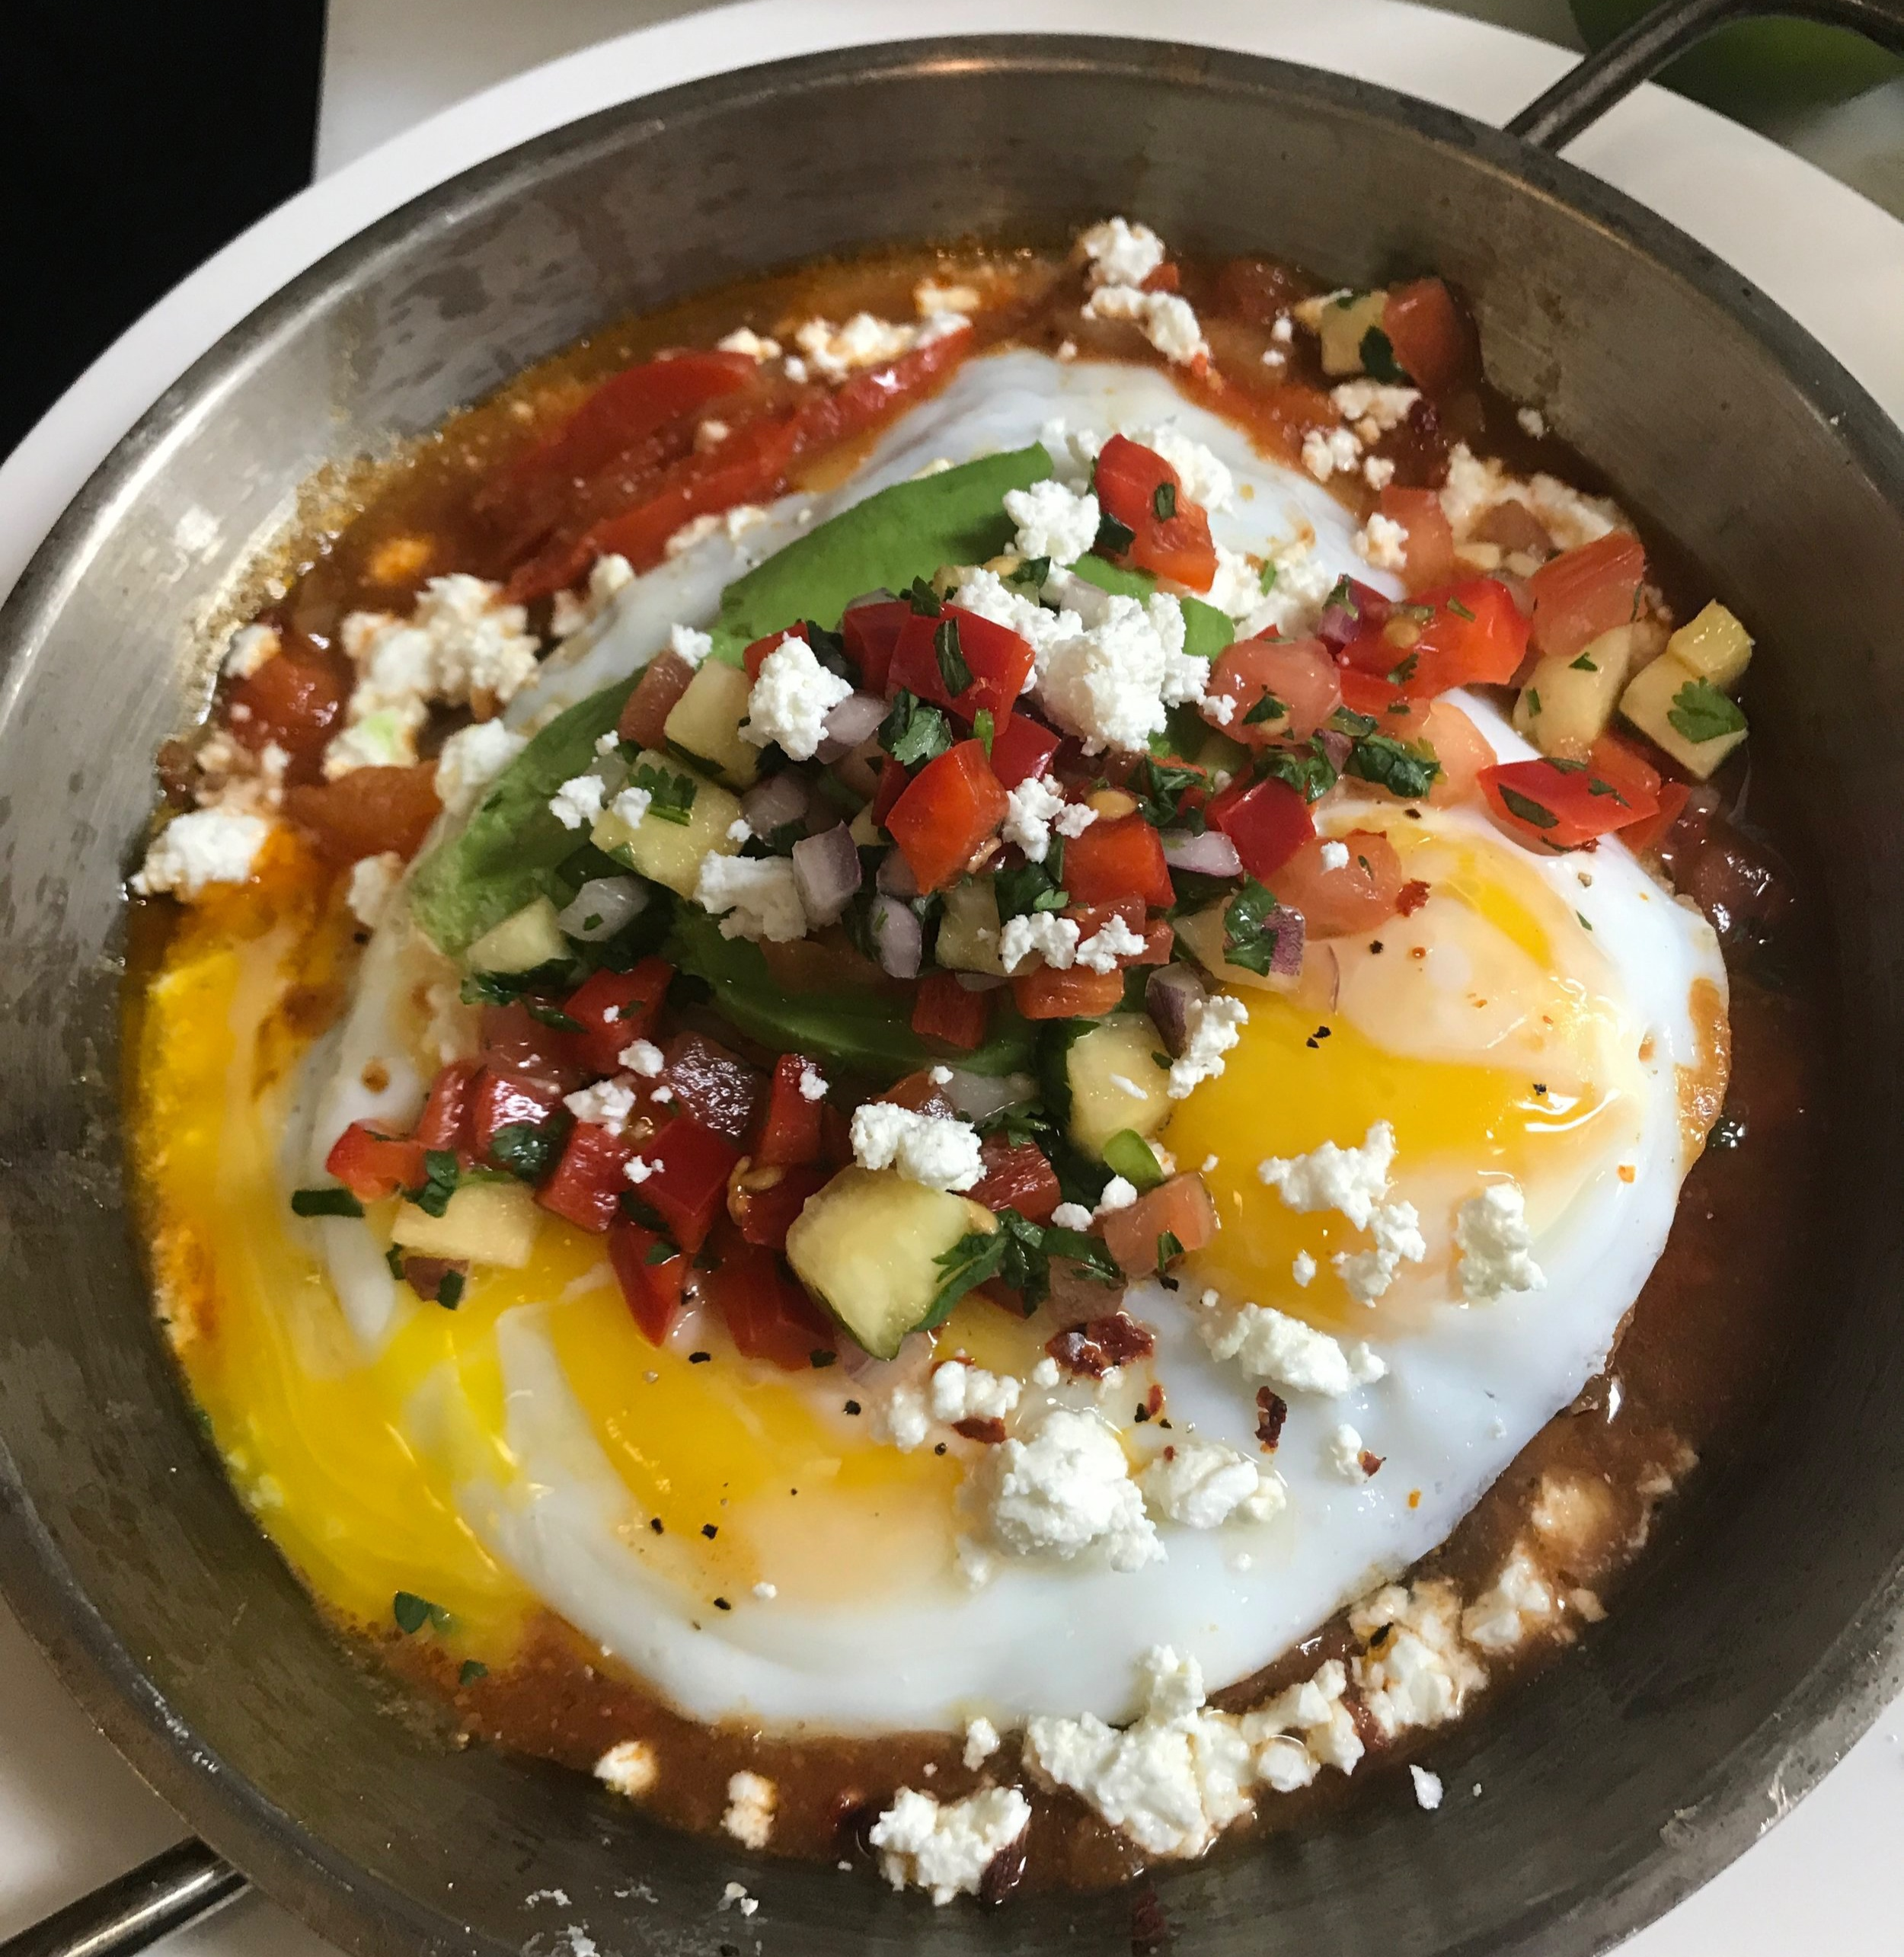 You Don't Want to Miss This! - Special Dishes include:Shakshuka Ranchera (brunch only)Eggs cooked in spicy tomato-red pepper sauce with tortilla tostada, frijoles, avocado, pico de gallo & fetaTacosChicken ShawarmaSiske - Kurdish Style Slow-Cooked BeefSautéed Veggieseach served in corn tortilla with guacamole, pineapple-pico de gallo, shaved cabbage & smokey yogurt sauceSpecialty Cocktails:Watermelon MargaritaSmokey Pineapple Arak-aritaBloody Maria